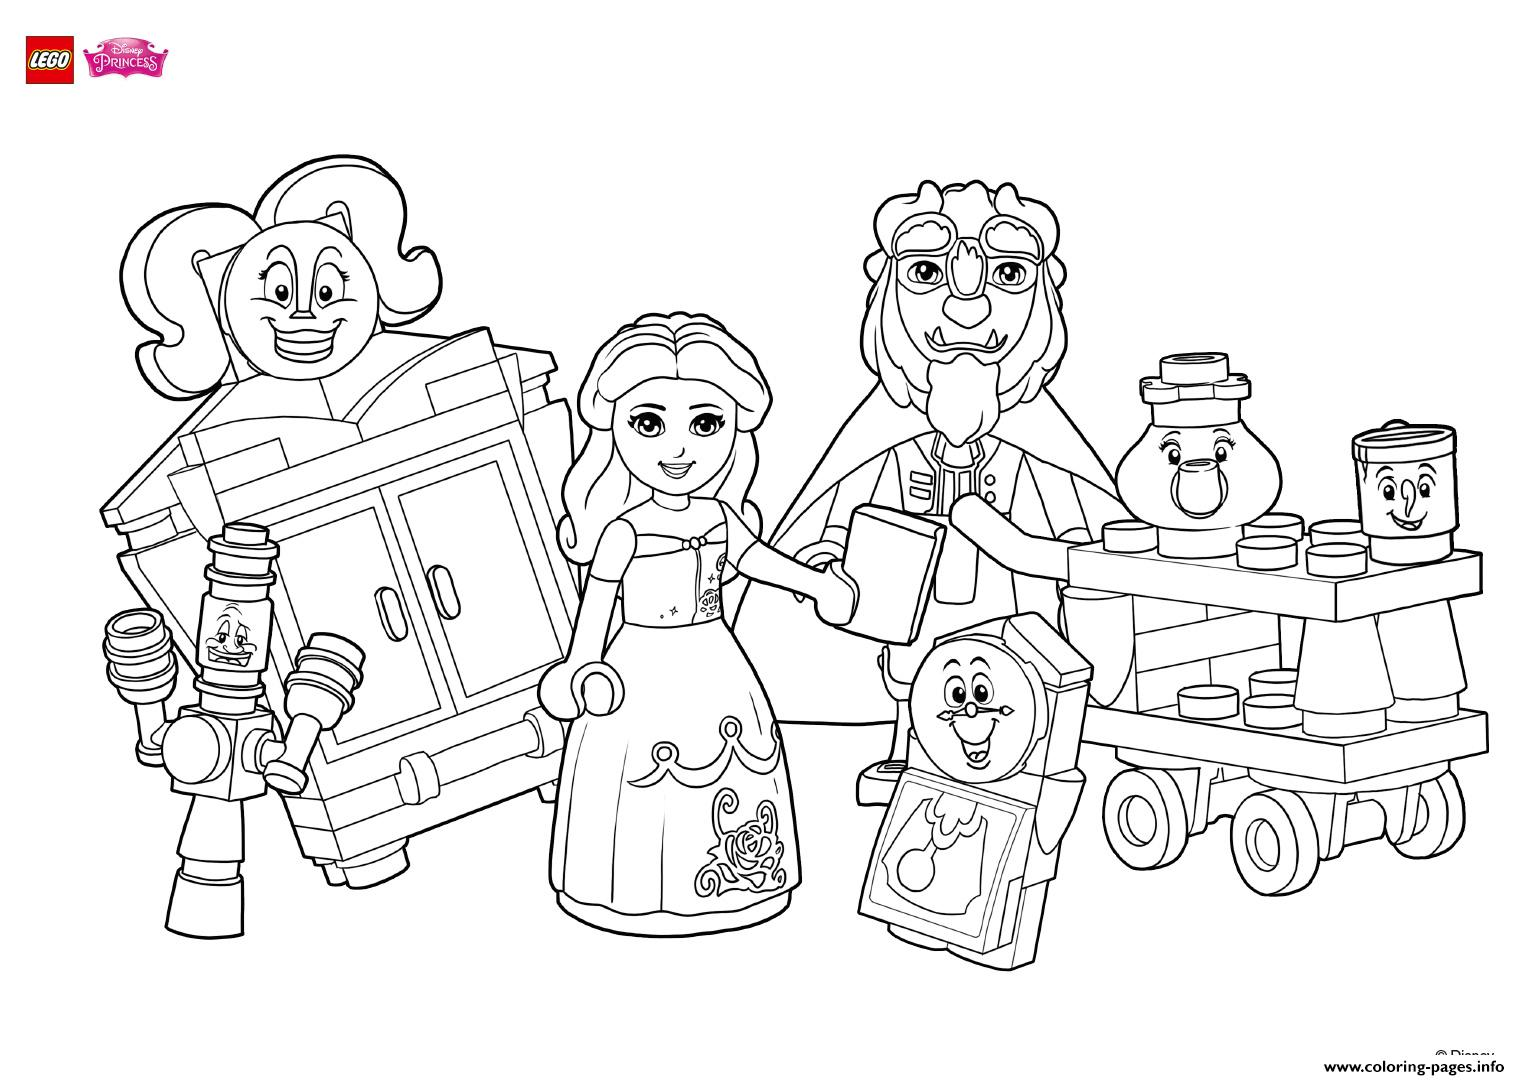 Coloring Fun With Beauty And Her Friends Lego Disney